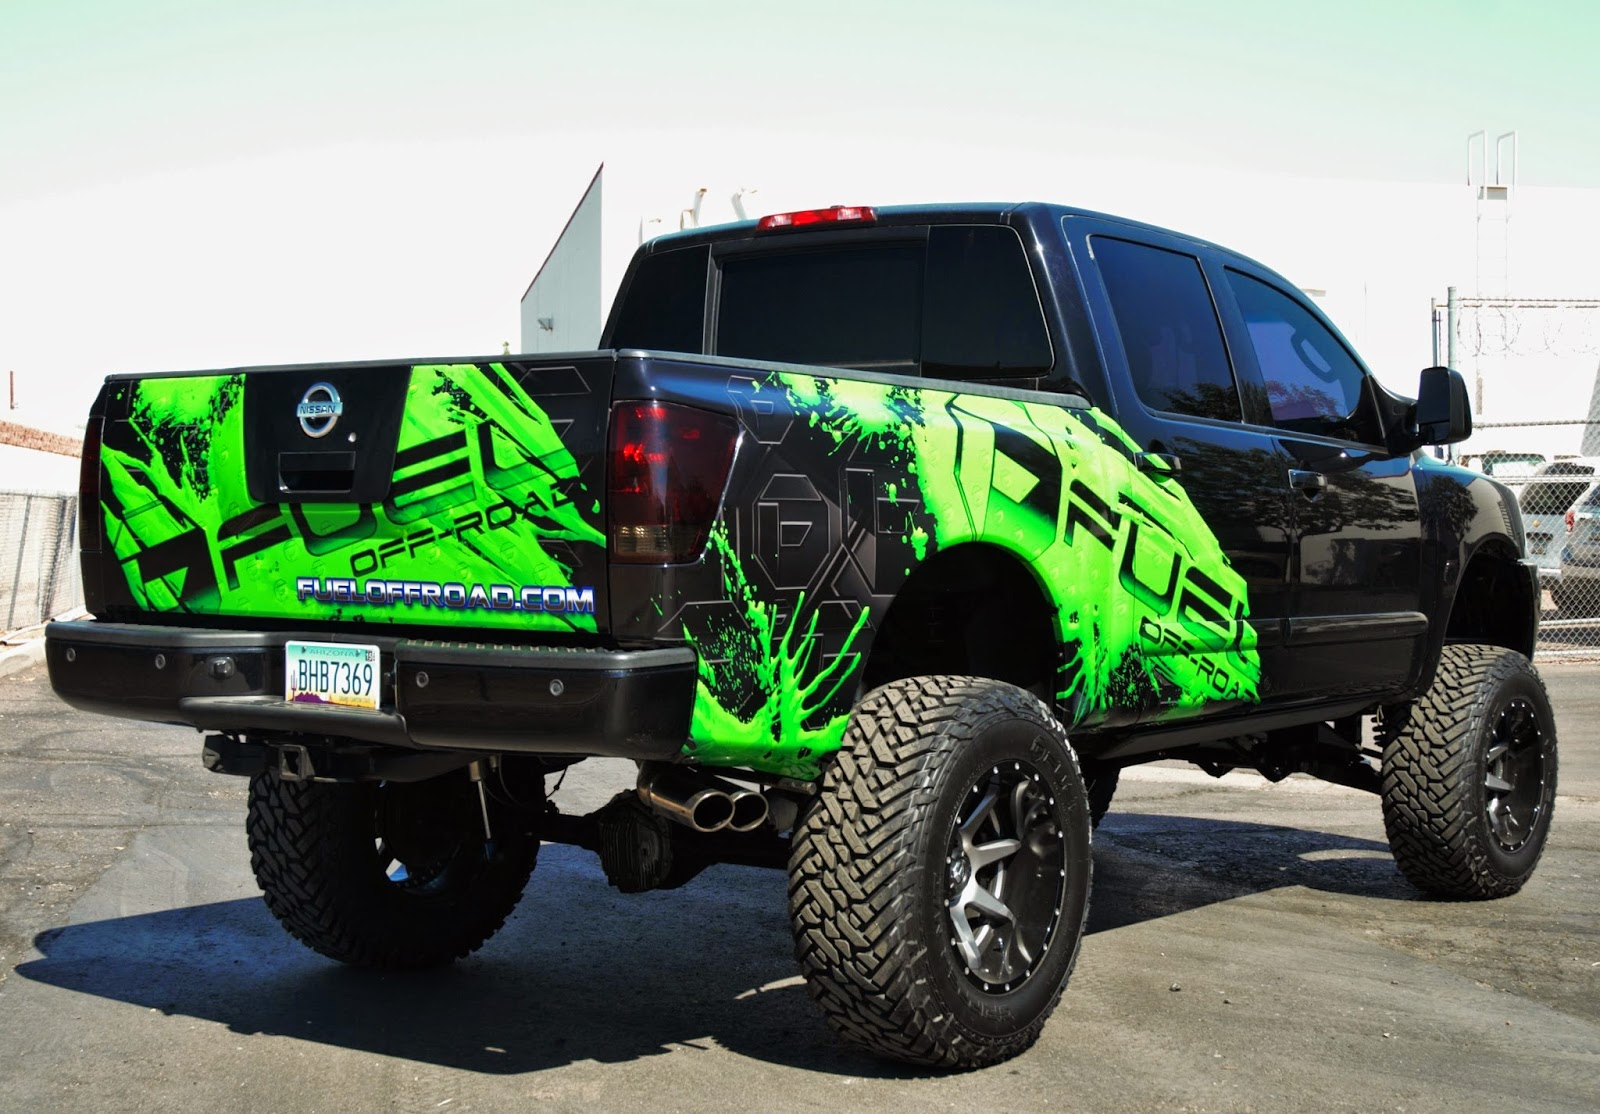 Vehicle Wraps And Screen Printing By Fast Trac Designs